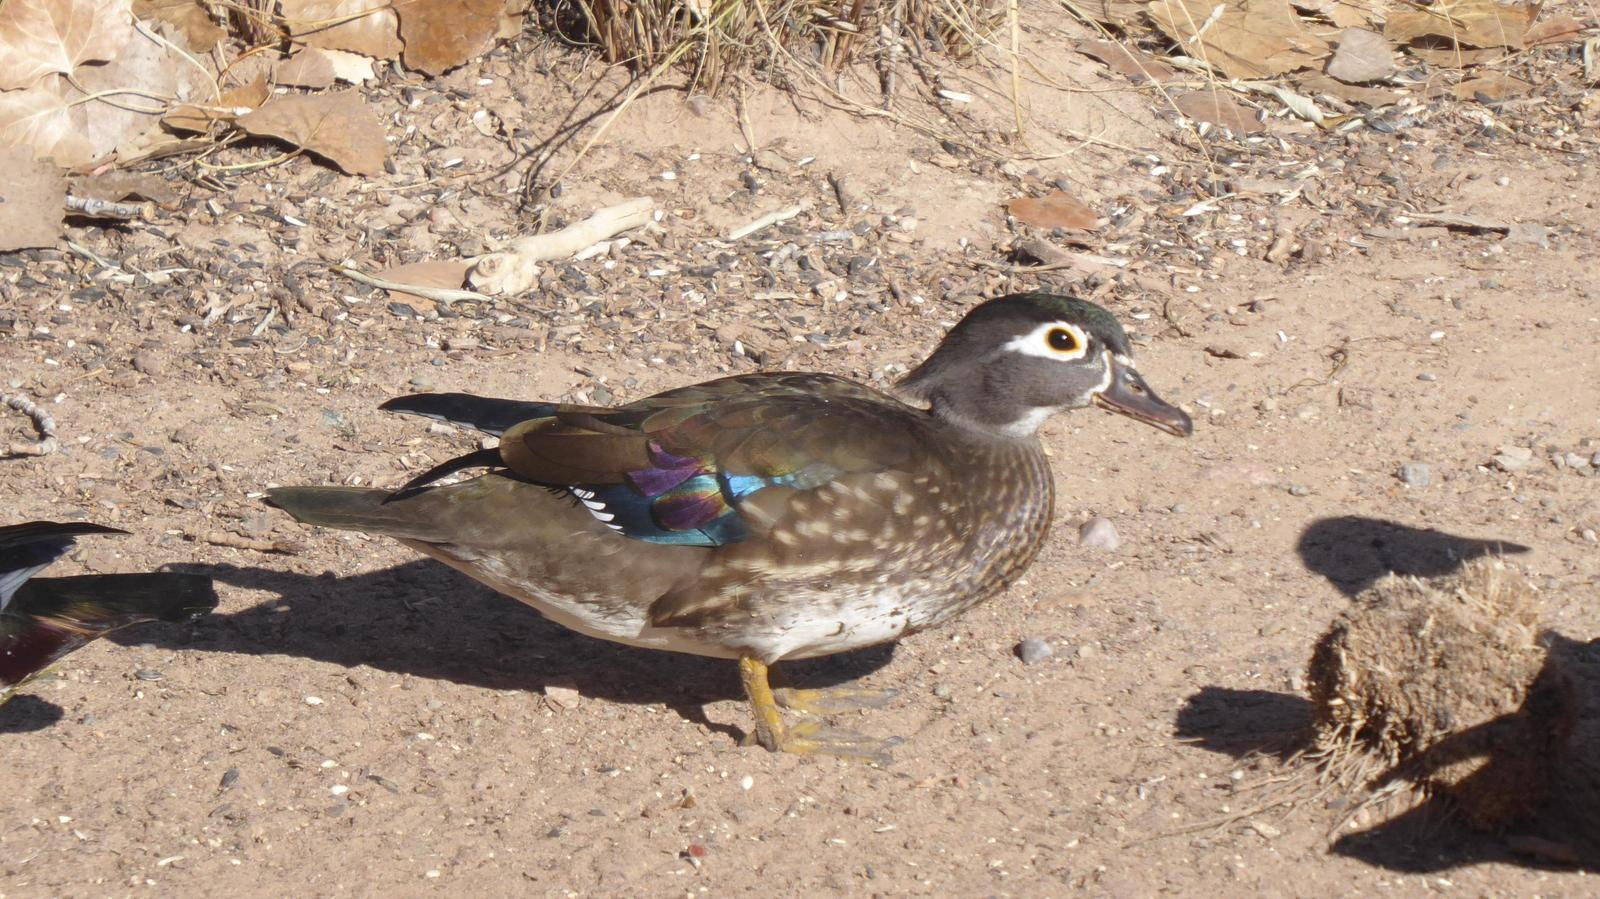 Wood Duck Photo by Daliel Leite